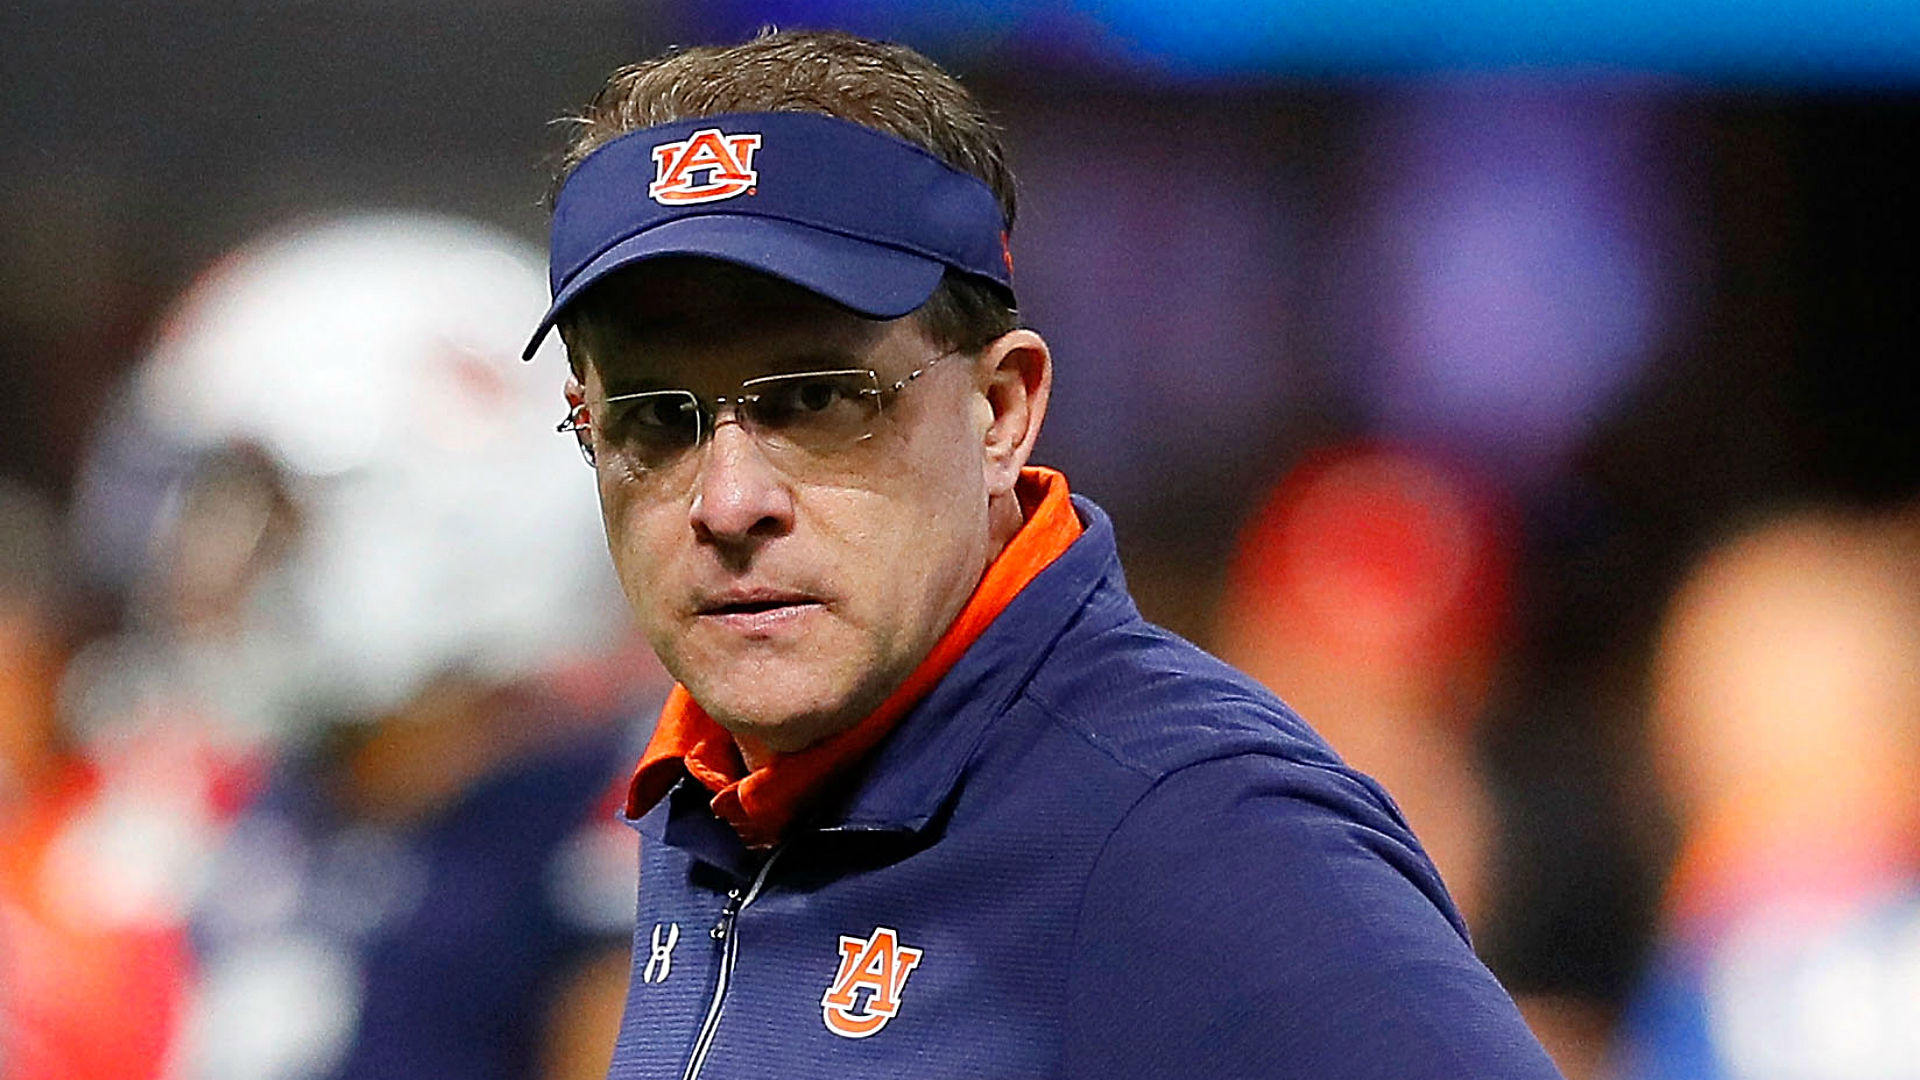 Gus Malzahn says he won't be leaving Auburn anytime soon